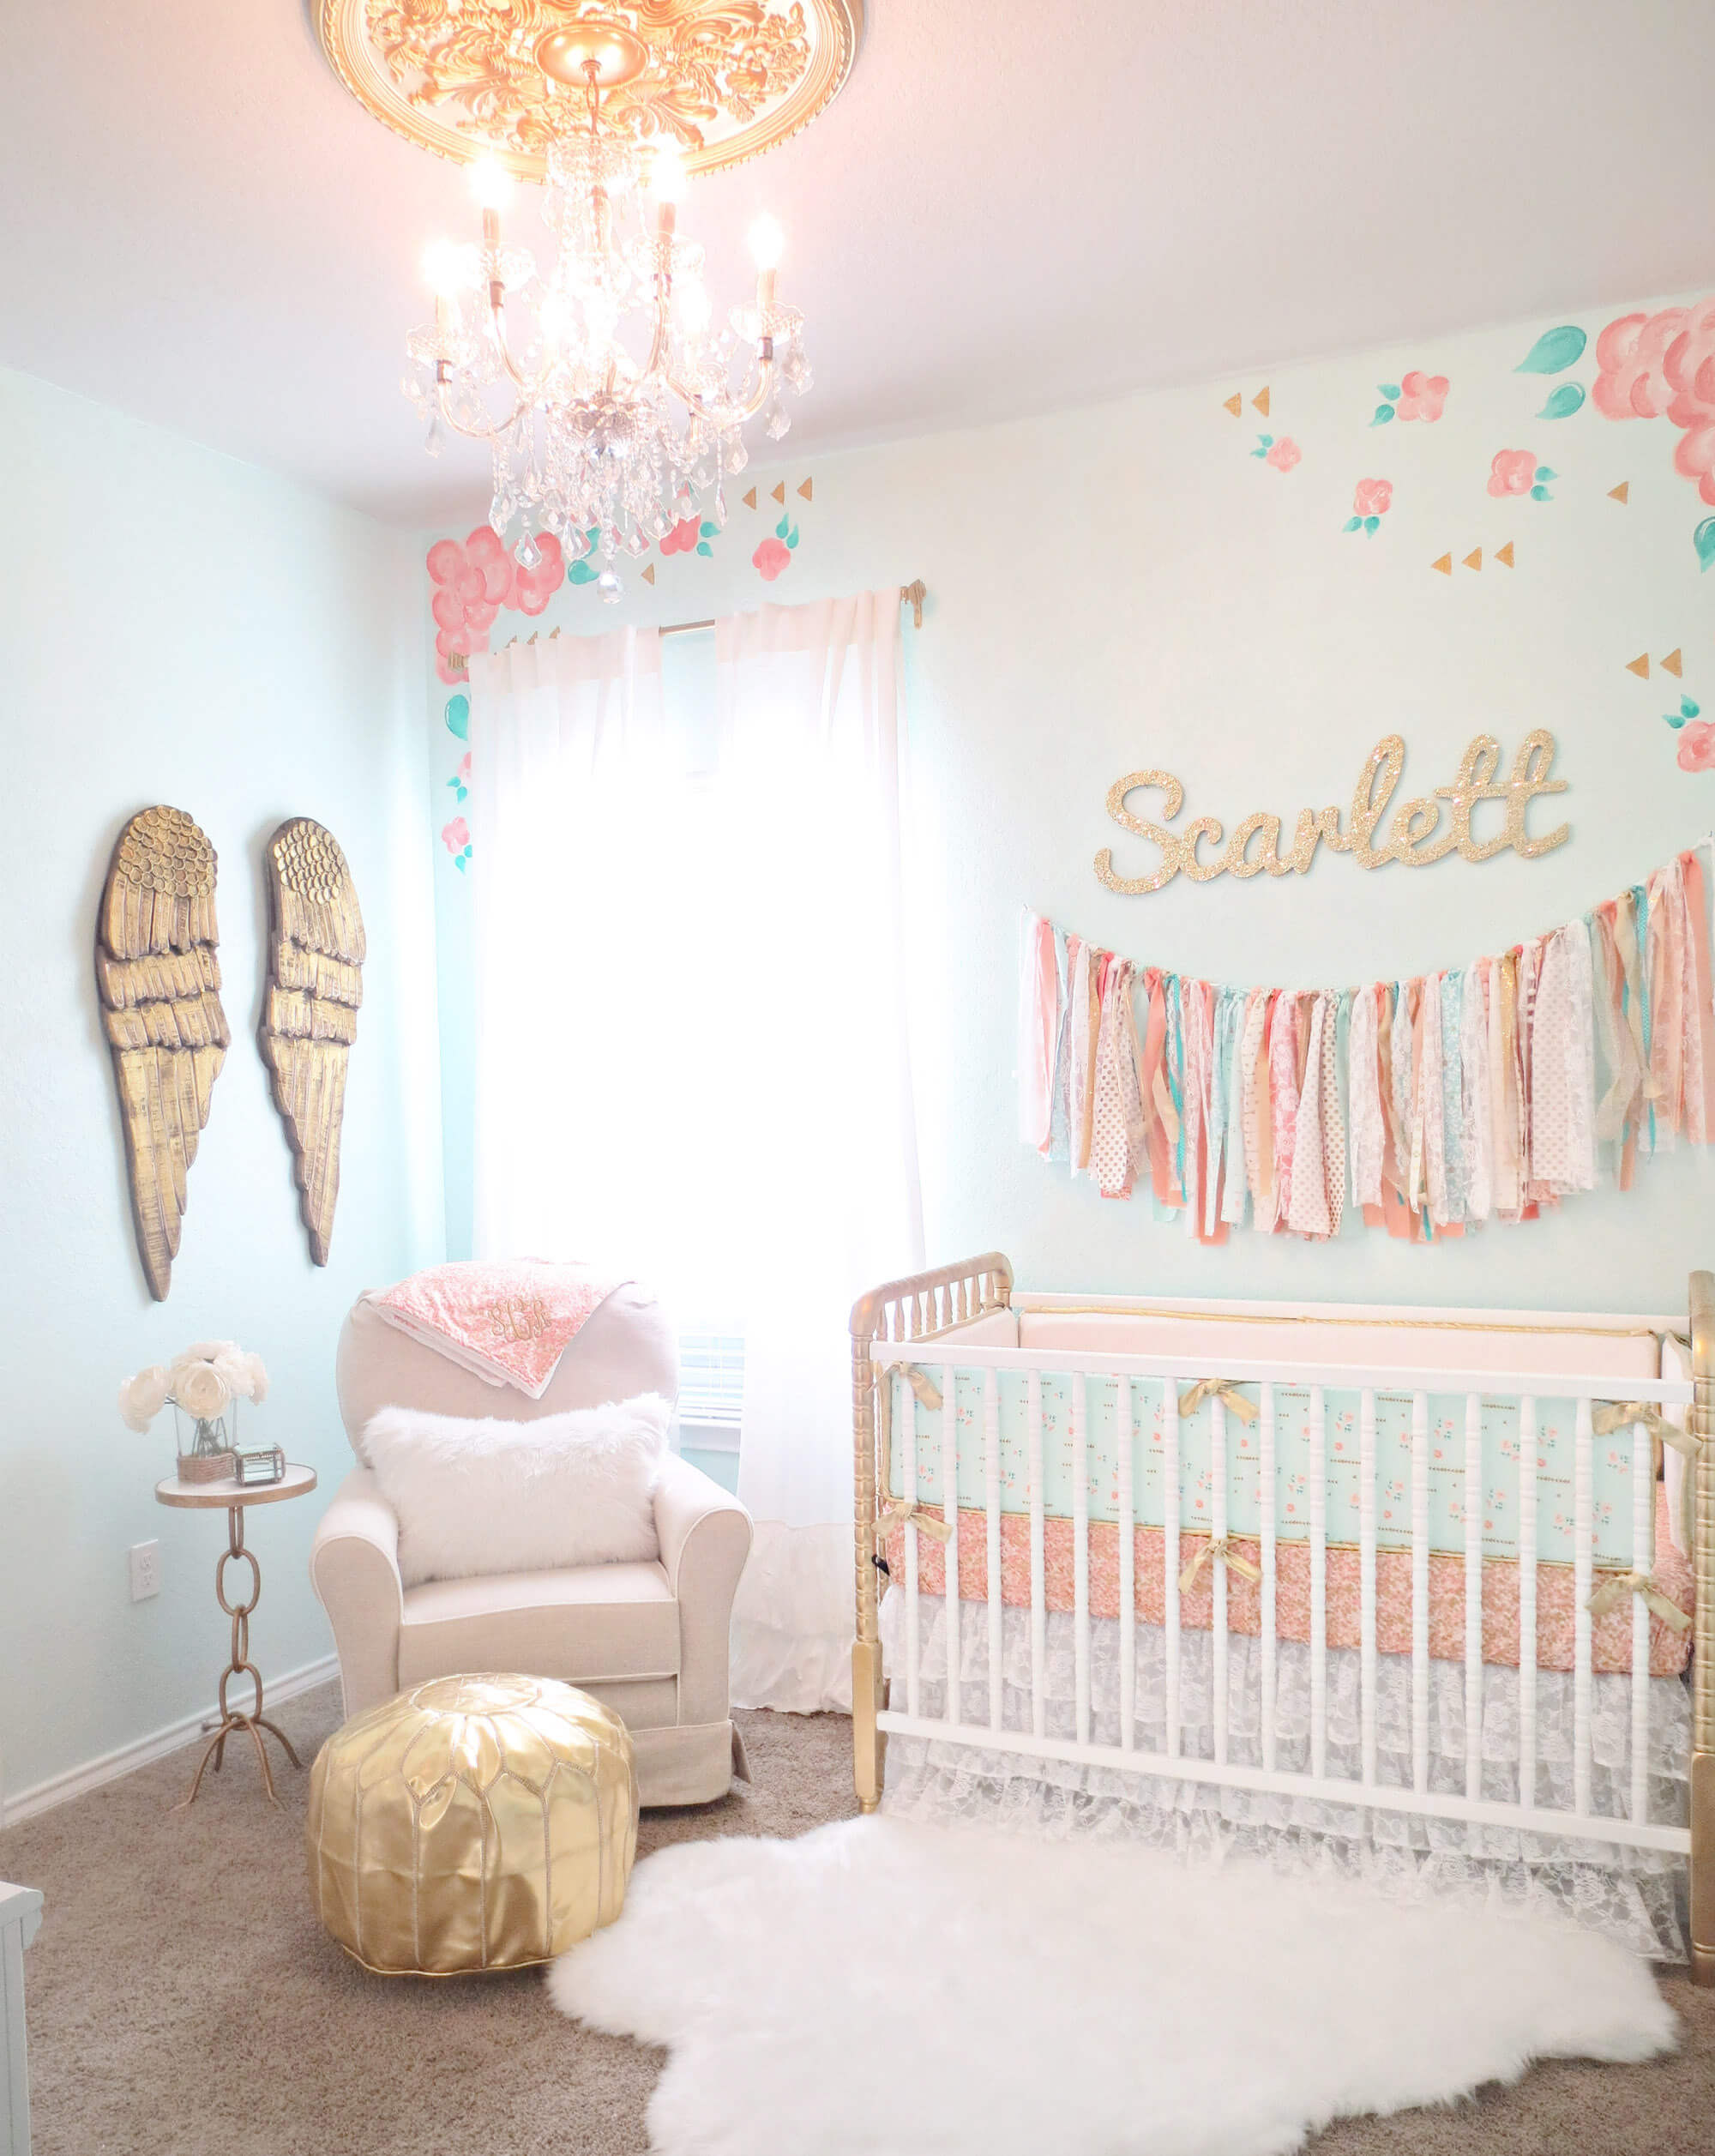 Apartment decorating for the baby